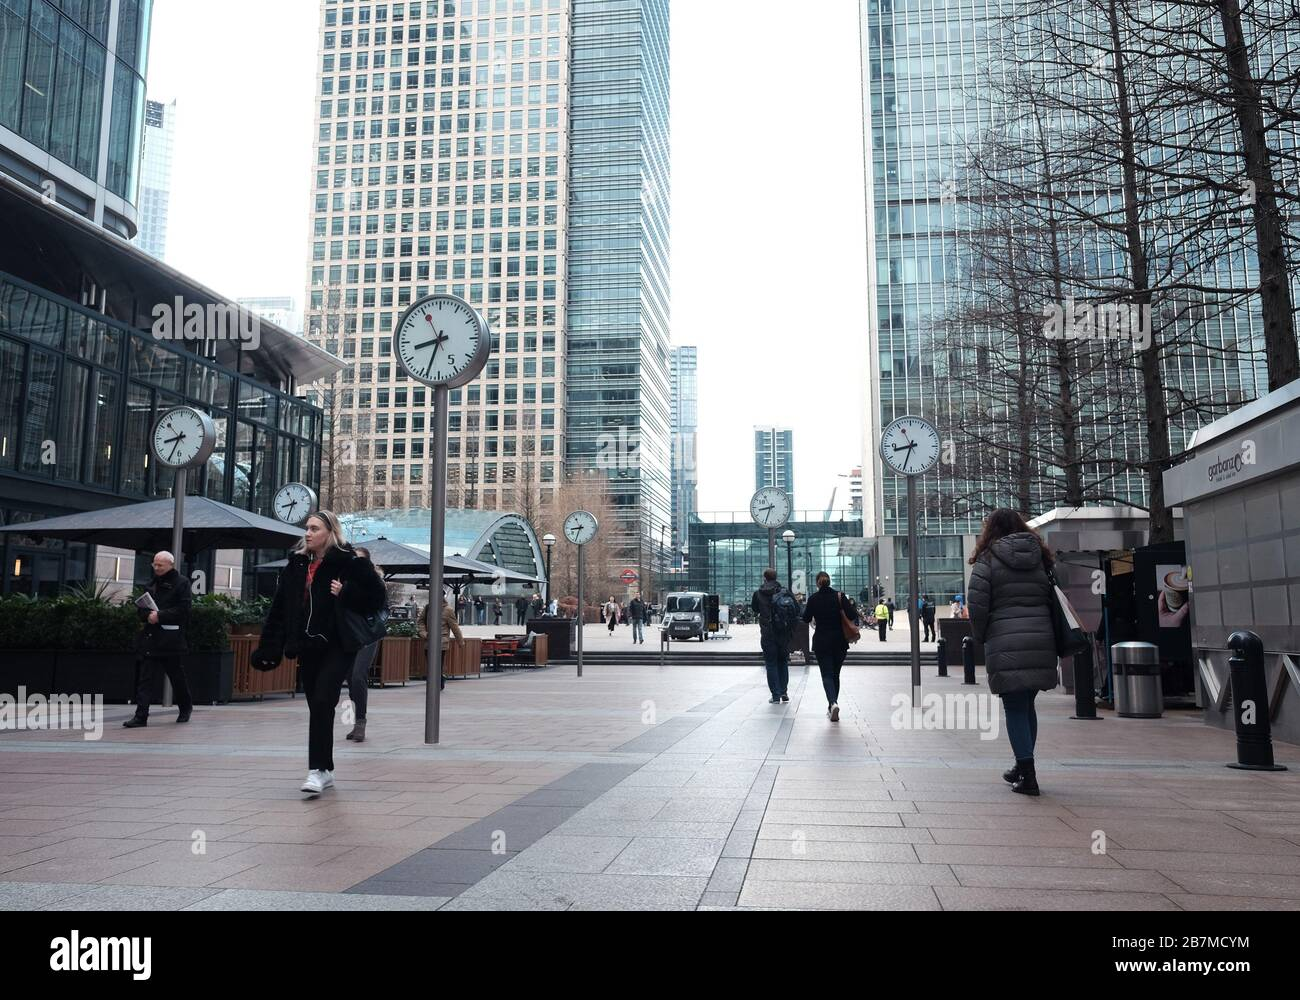 People walk across Reuters Plaza in Canary Wharf, London, the day after Prime Minister Boris Johnson called on people to stay away from pubs, clubs and theatres, work from home if possible and avoid all non-essential contacts and travel in order to reduce the impact of the coronavirus pandemic. Stock Photo